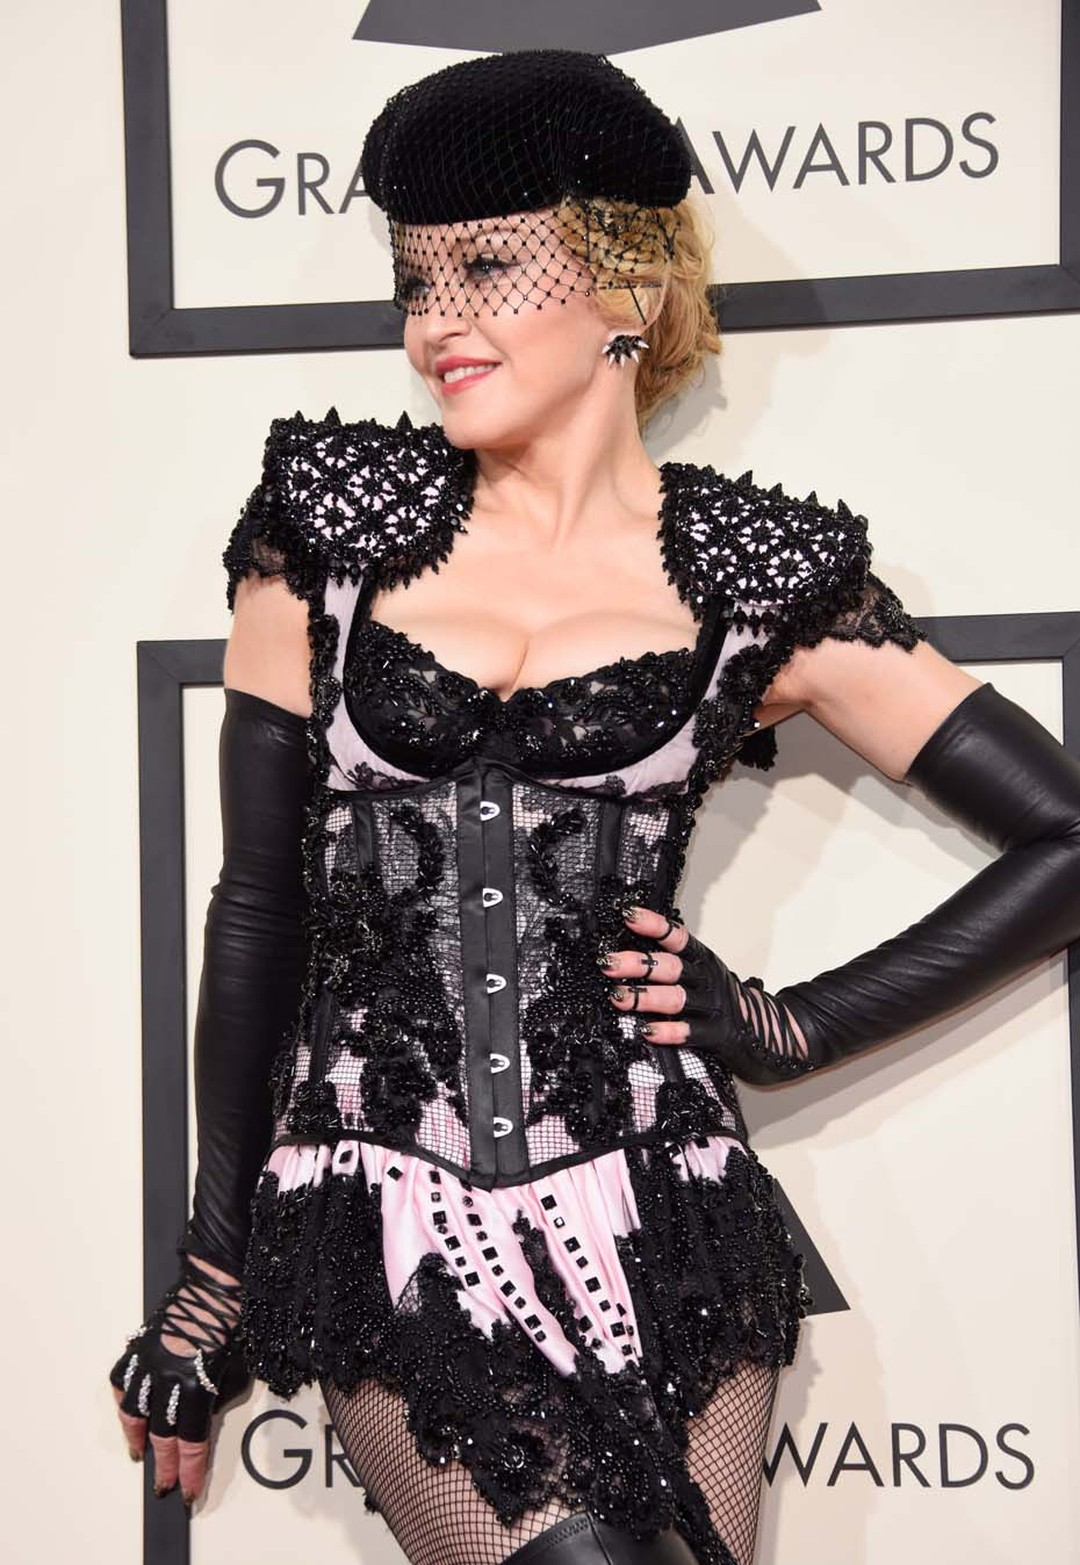 Madonna's red carpet jewelry proved the perfect accessory to her skimpy custom Givenchy Matador-inspired outfit, as she opted for a beautiful Yeprem diamond hand bracelet and multiple rings from Lynn Ban.